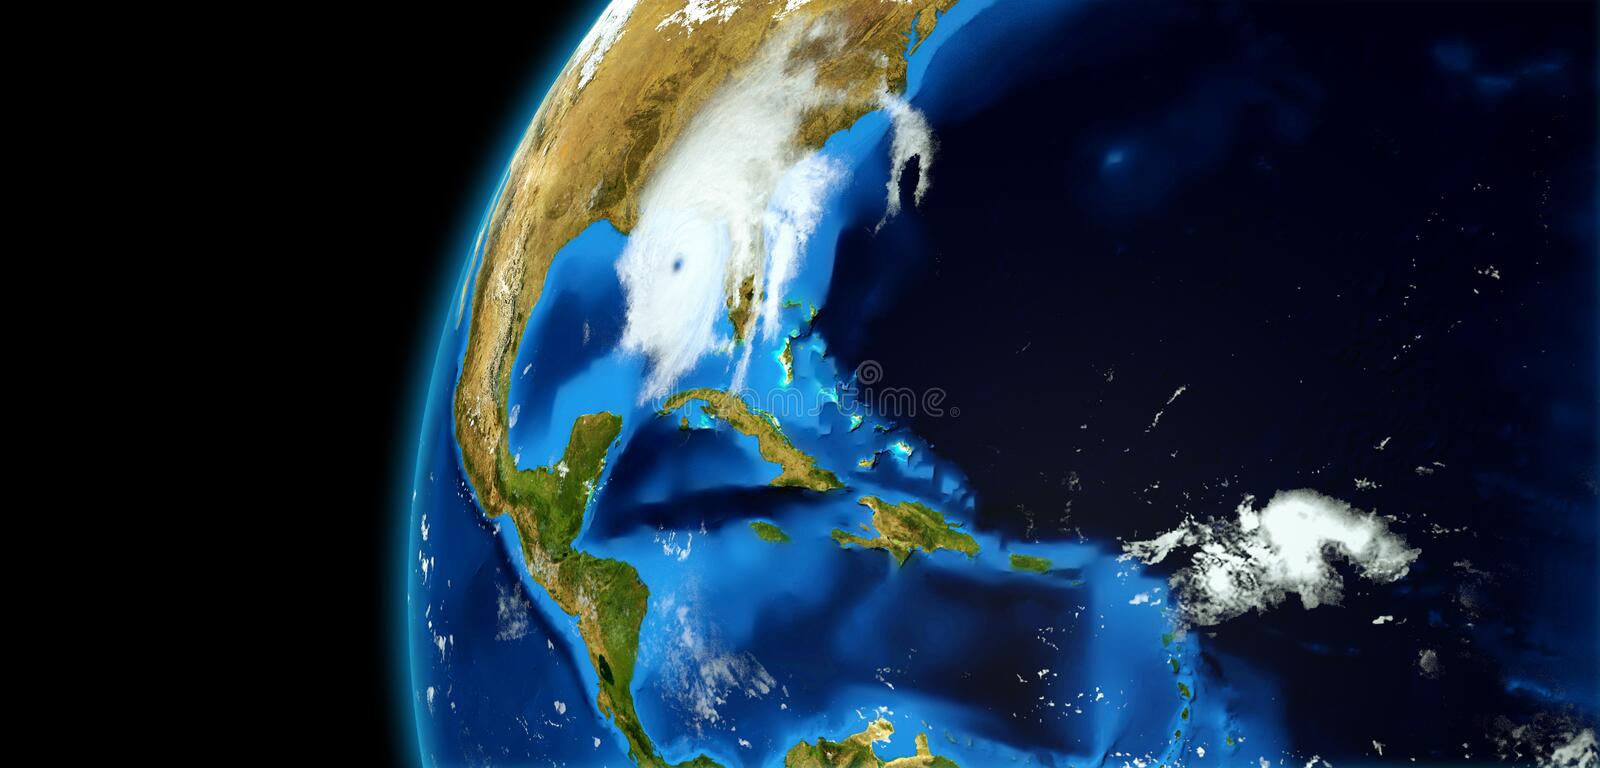 Extremely detailed and realistic high resolution 3D illustration of a Hurricane. Shot from Space. Elements of this image are furni. Extremely detailed and stock photos